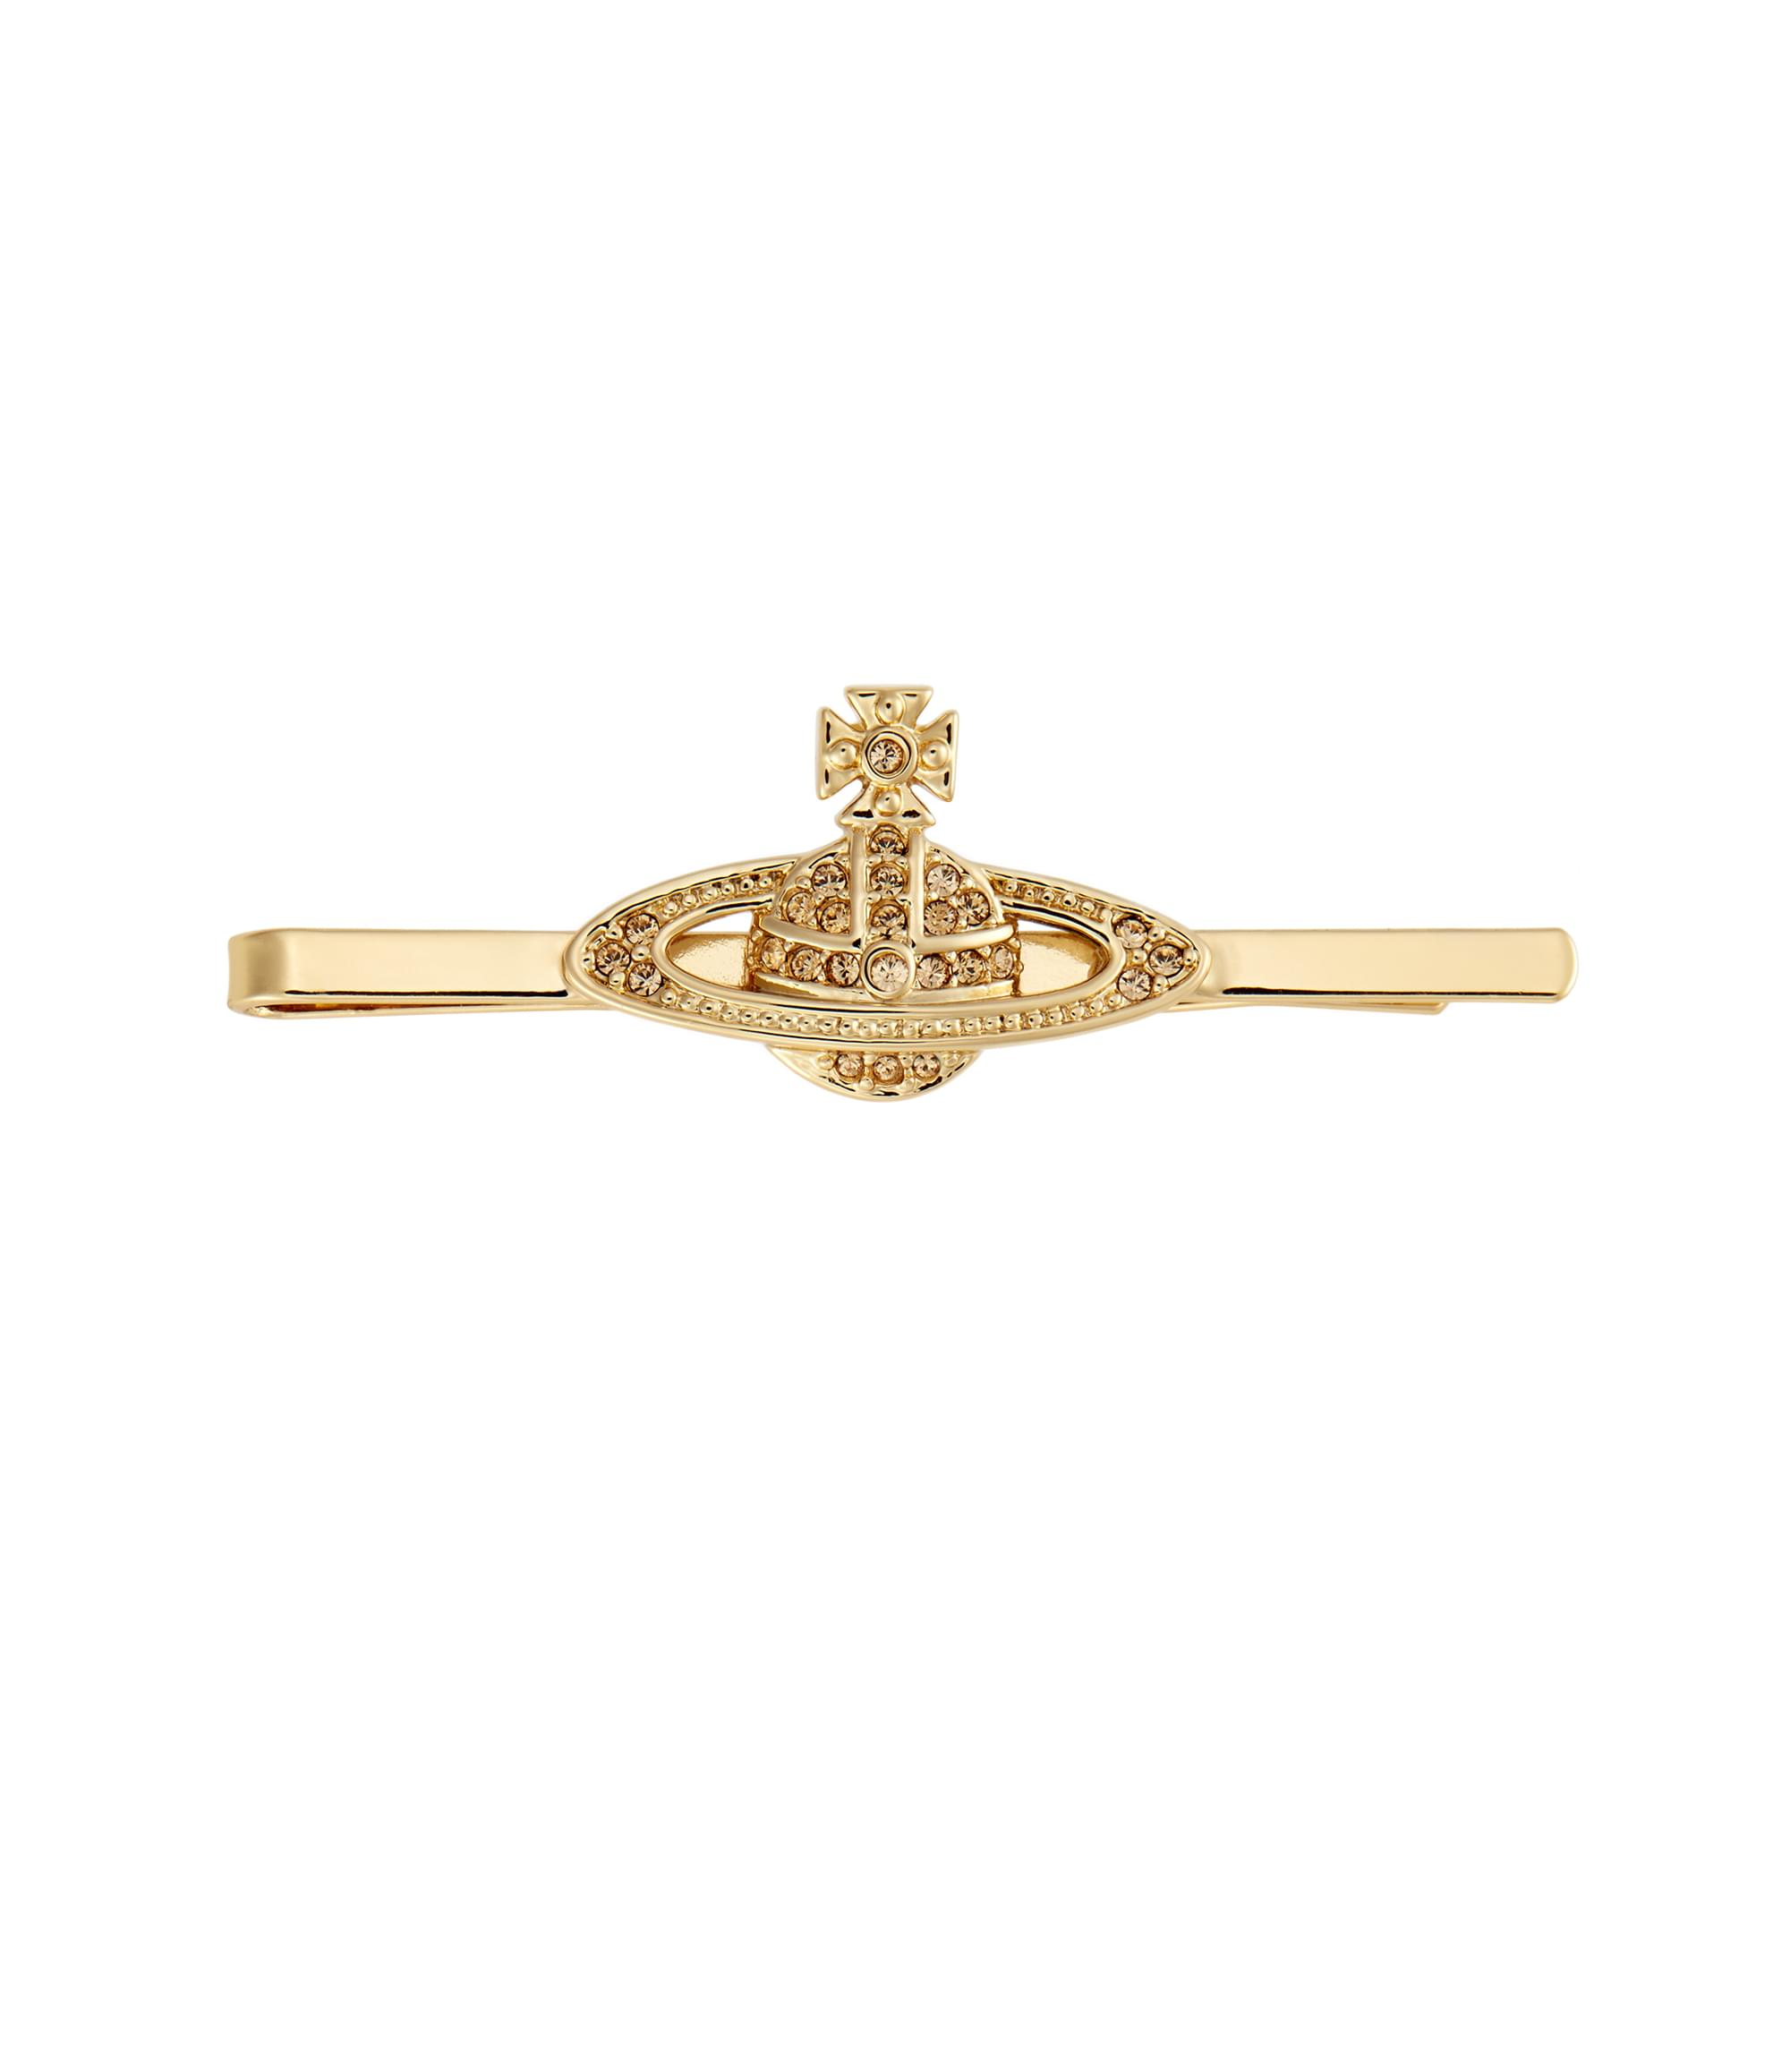 Vivienne Westwood Light Topaz Mini Bas Relief Tie Clip